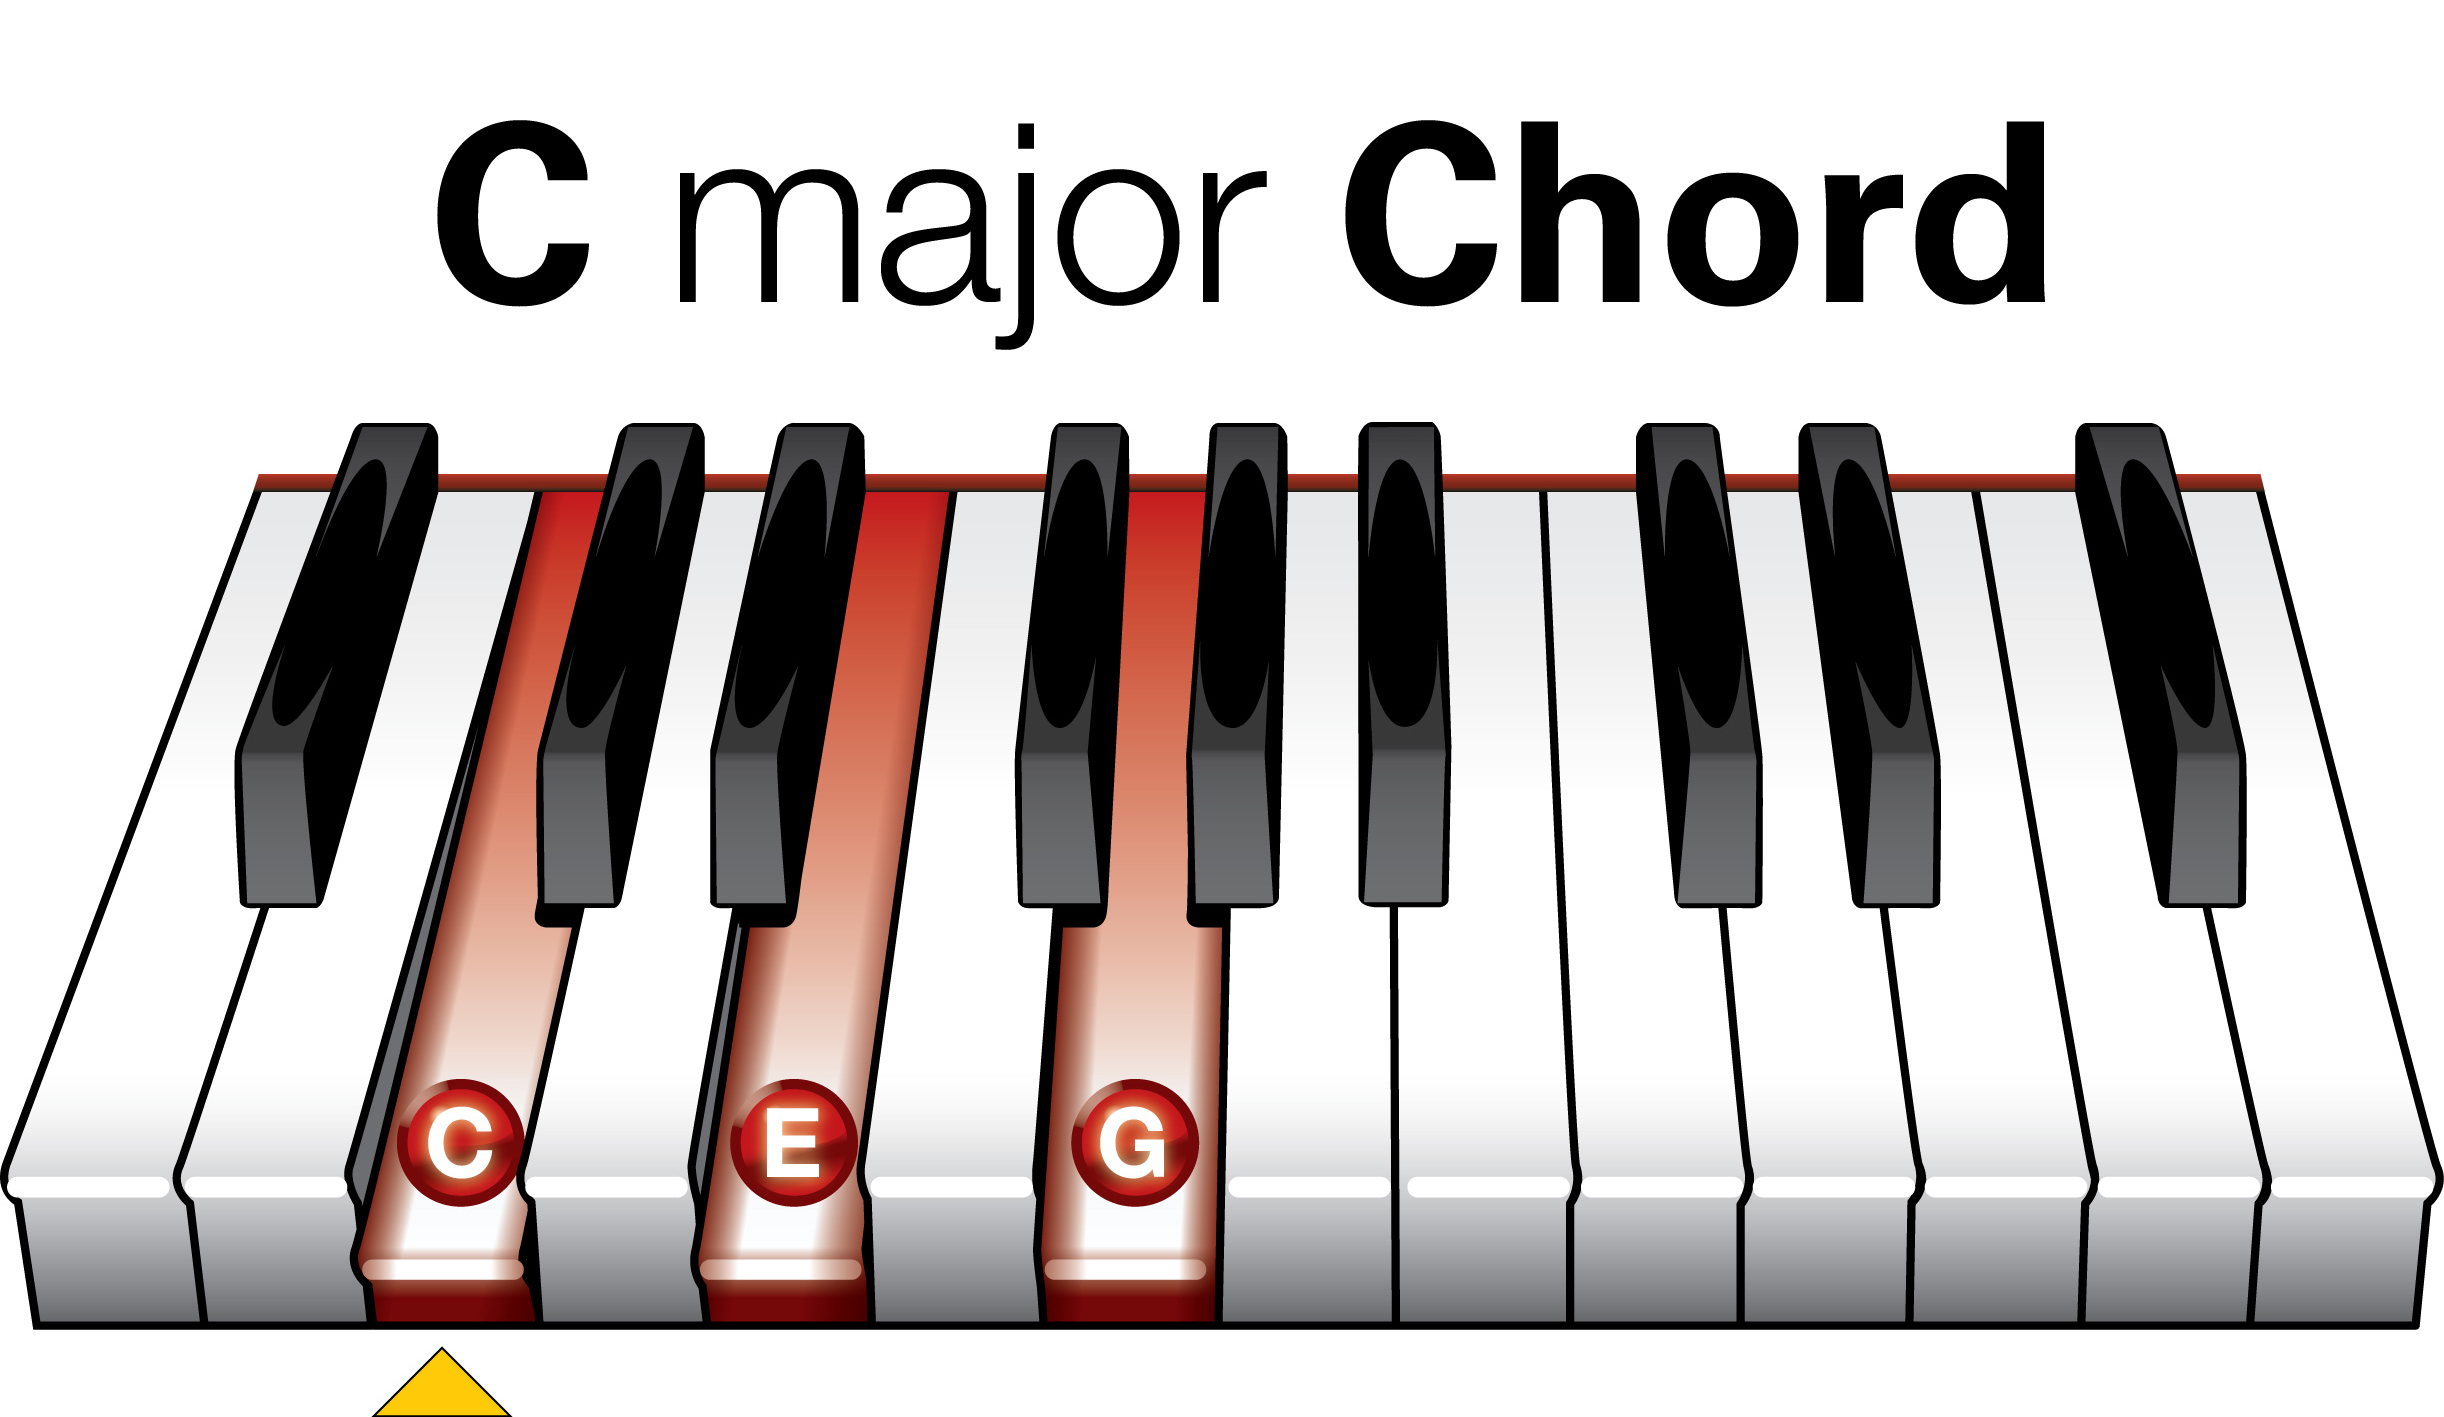 C Major Chord 24 easy piano chords in 30 minutes with leon olguin music space 14 piano diagram at aneh.co